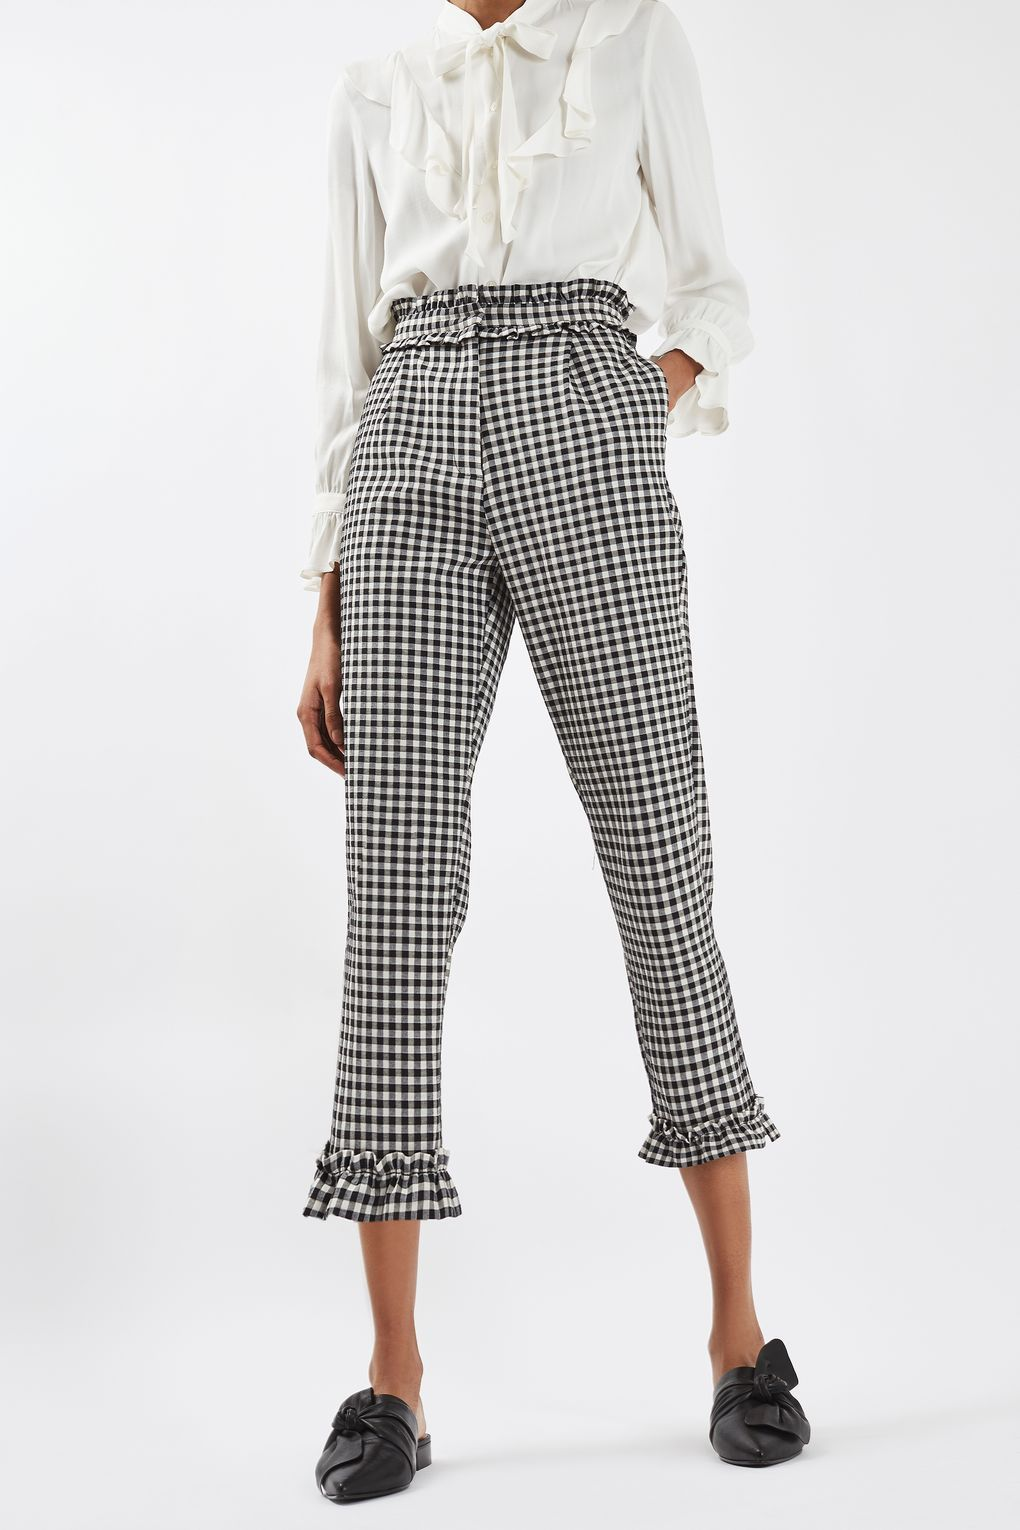 08a7358efc445 Gingham Frill Trousers in 2019